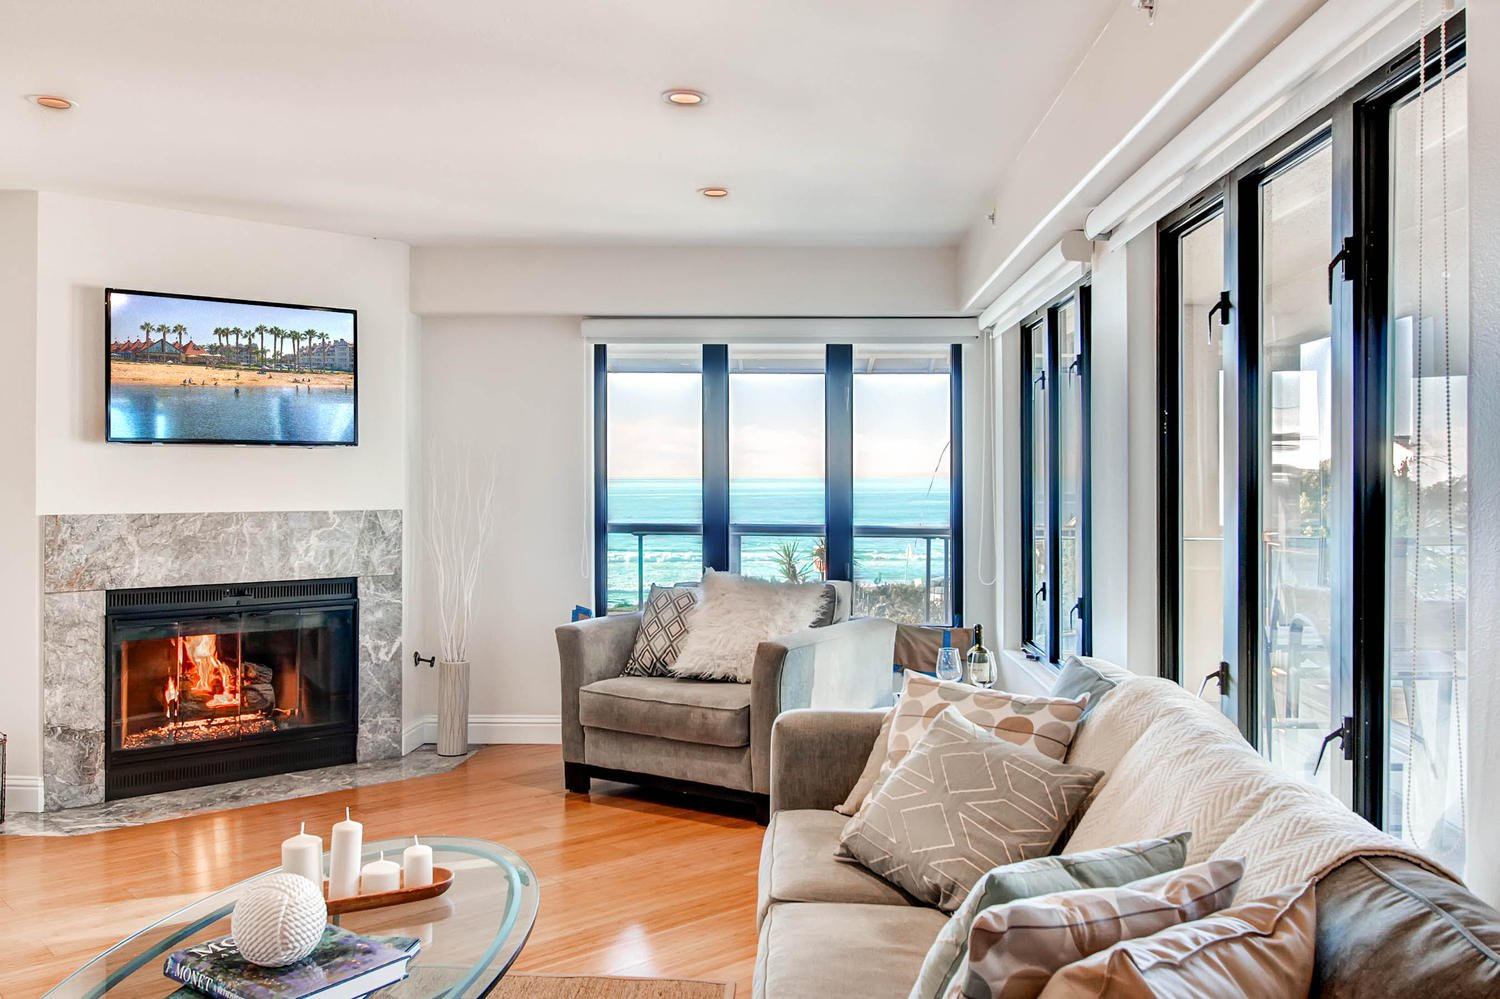 Main Photo: Condo for sale : 2 bedrooms : 333 Coast Boulevard #5 in La Jolla